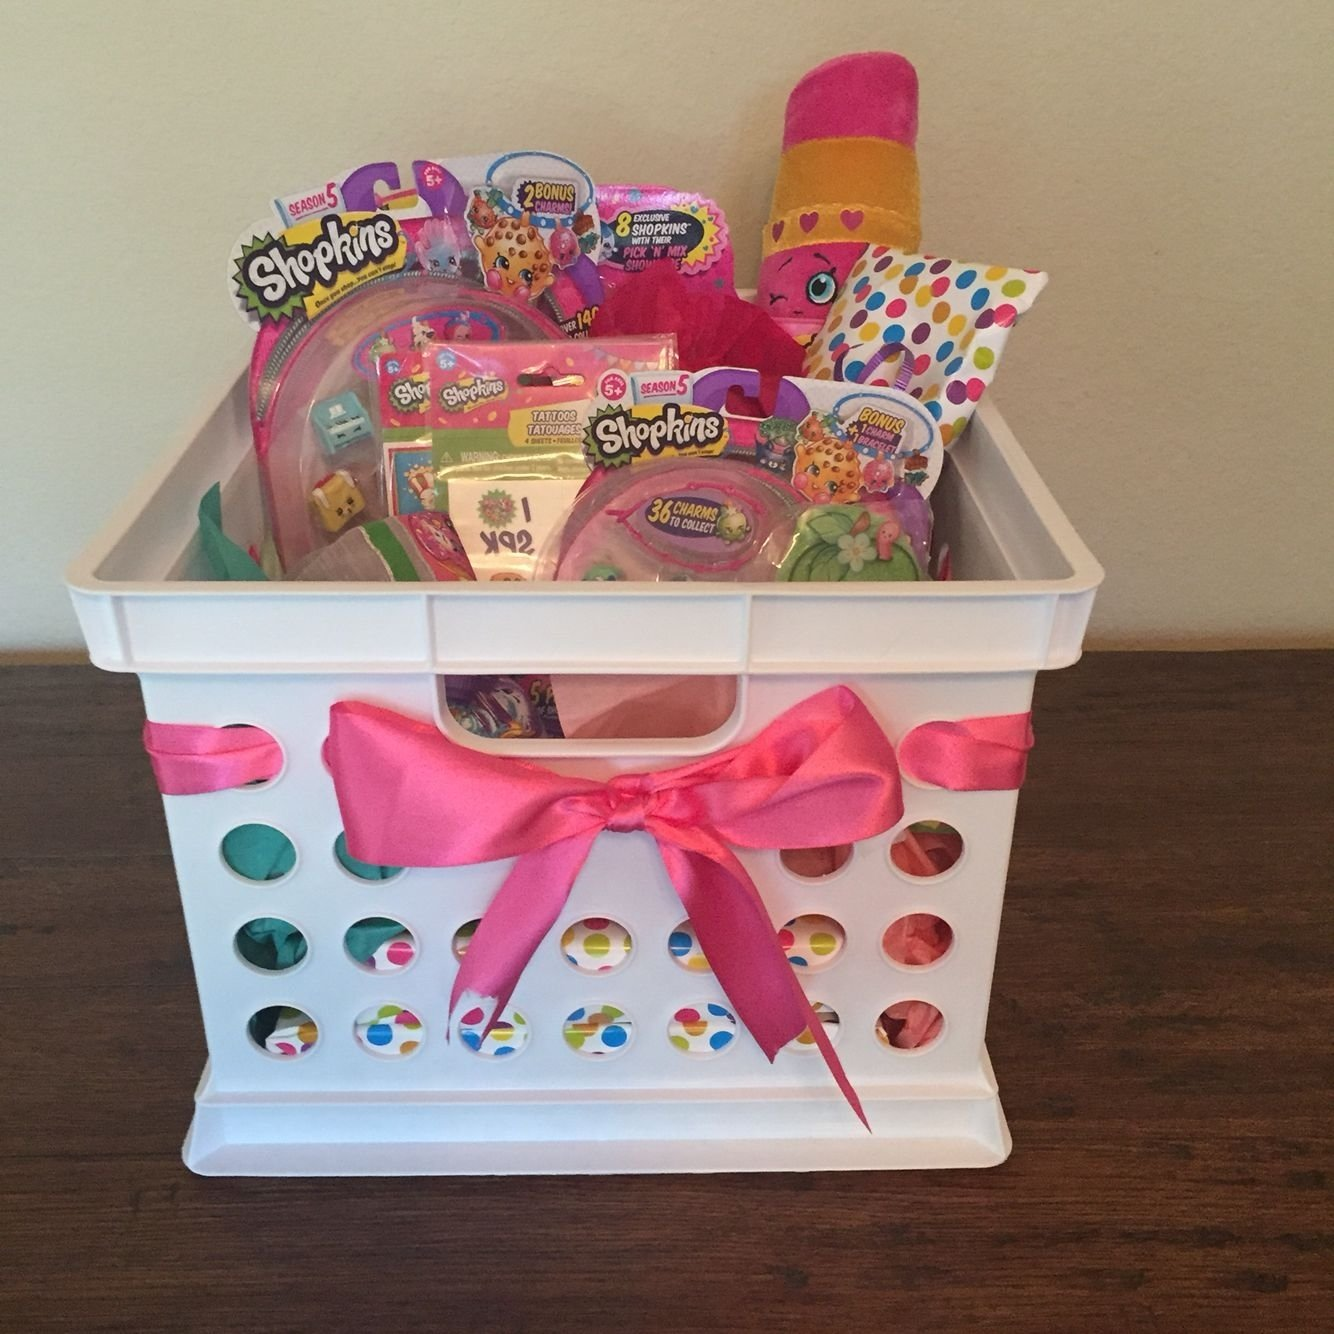 10 Fashionable Gift Basket Ideas For Kids shopkins gift basket diy pinterest shopkins gift and easter